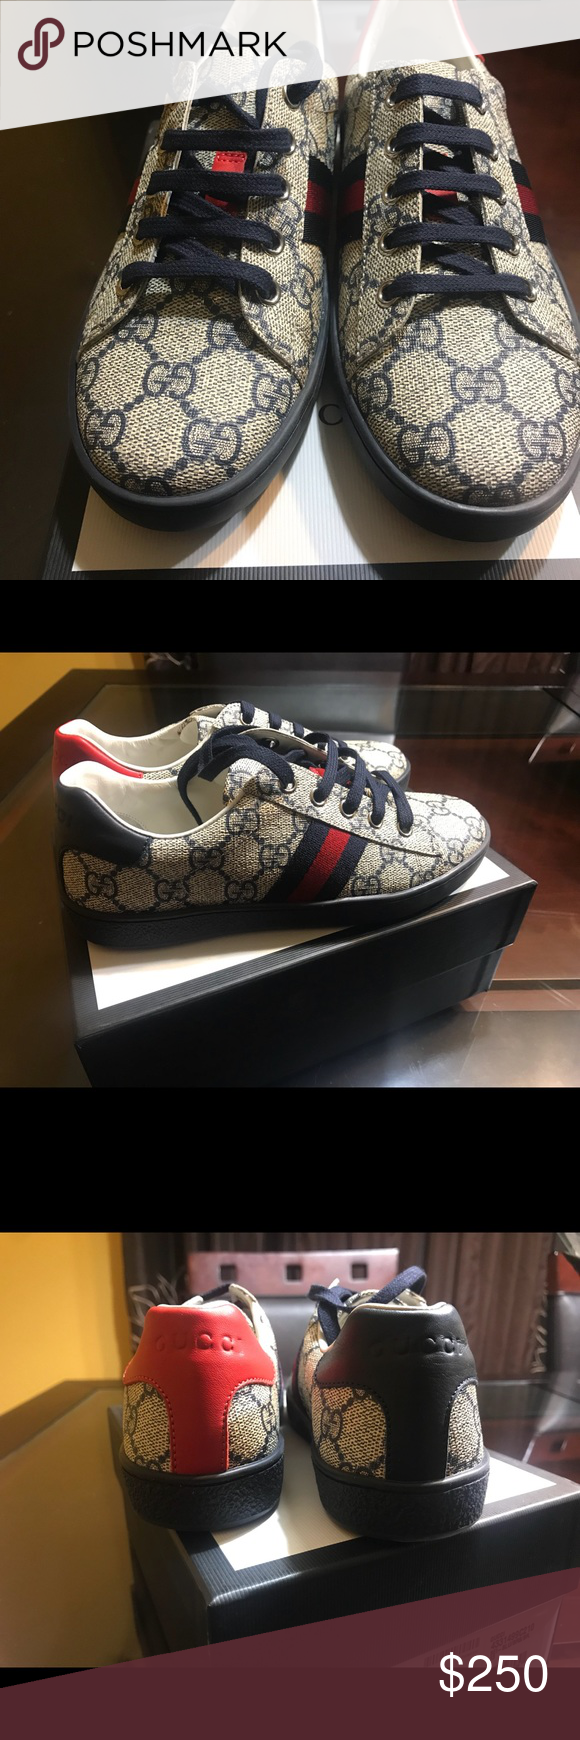 3fb4d8a2ac5 Kids Gucci GG Supreme low-top sneaker Brand new never worn. US SIZE 2 UK  SIZE 33 Gucci Shoes Sneakers